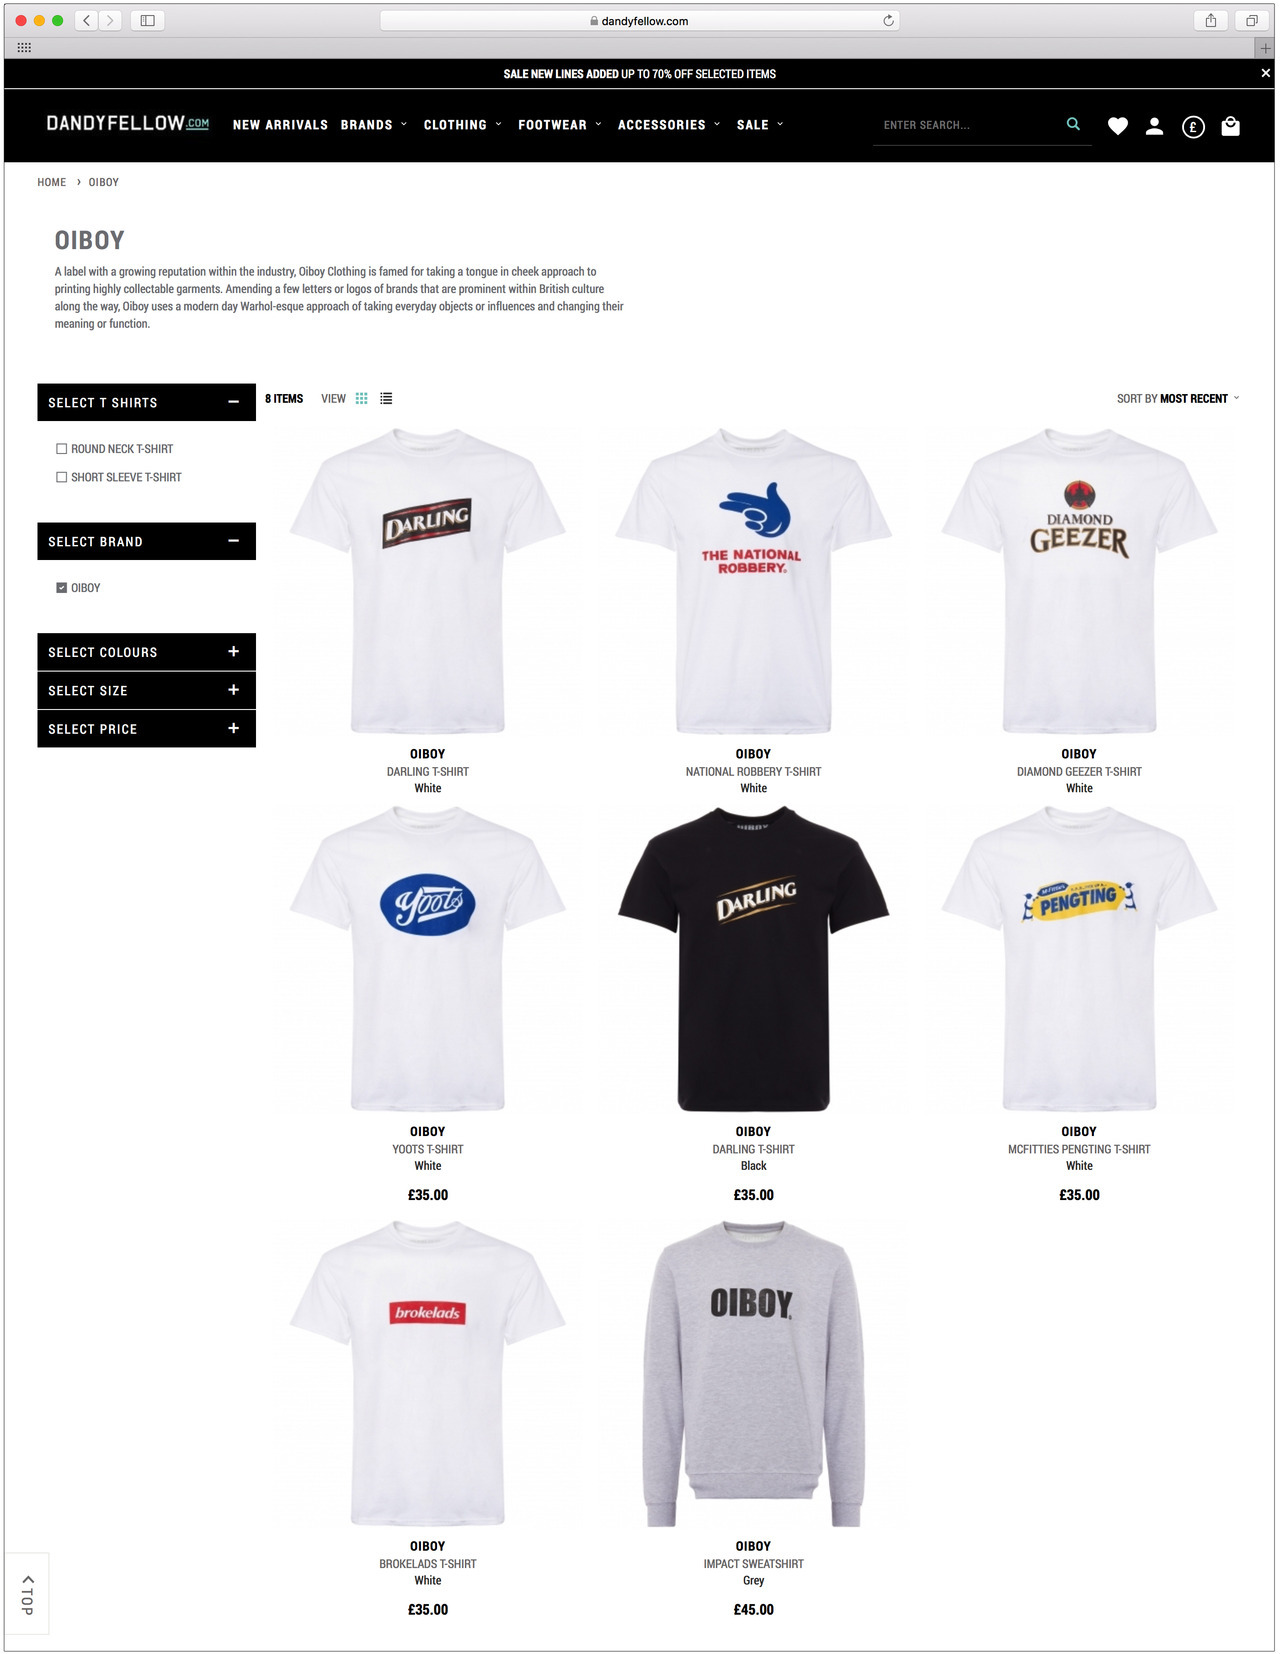 OIBOY are now stocked in DANDY FELLOW's website. See the selection here:   https://www.dandyfellow.com/oiboy-m387